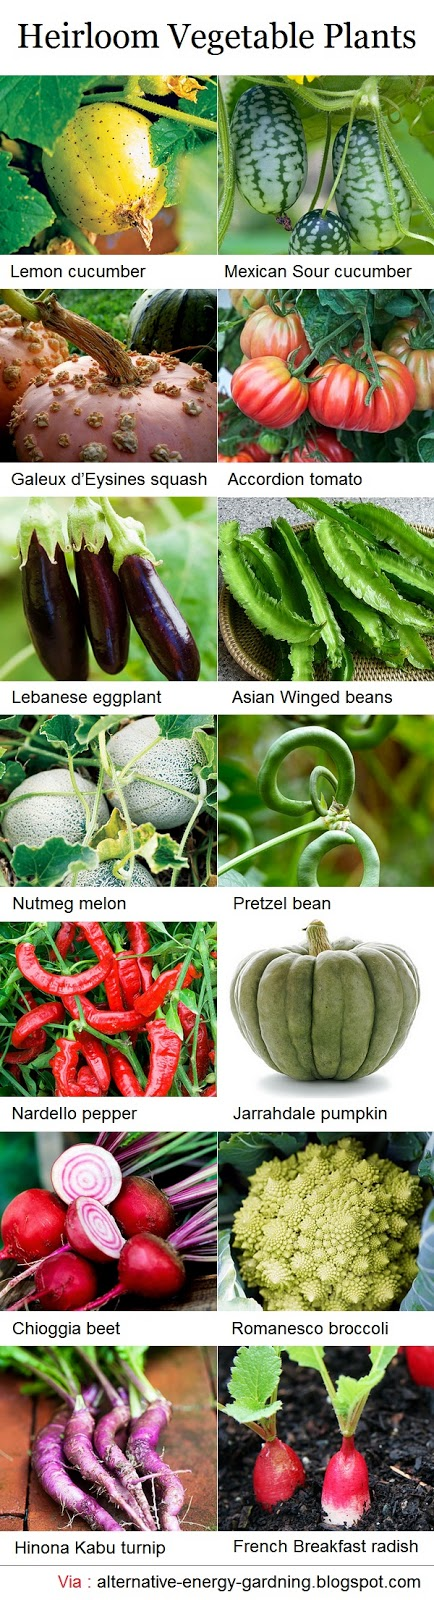 Heirloom vegetable plants dream garden 101 for Gardening 101 vegetables